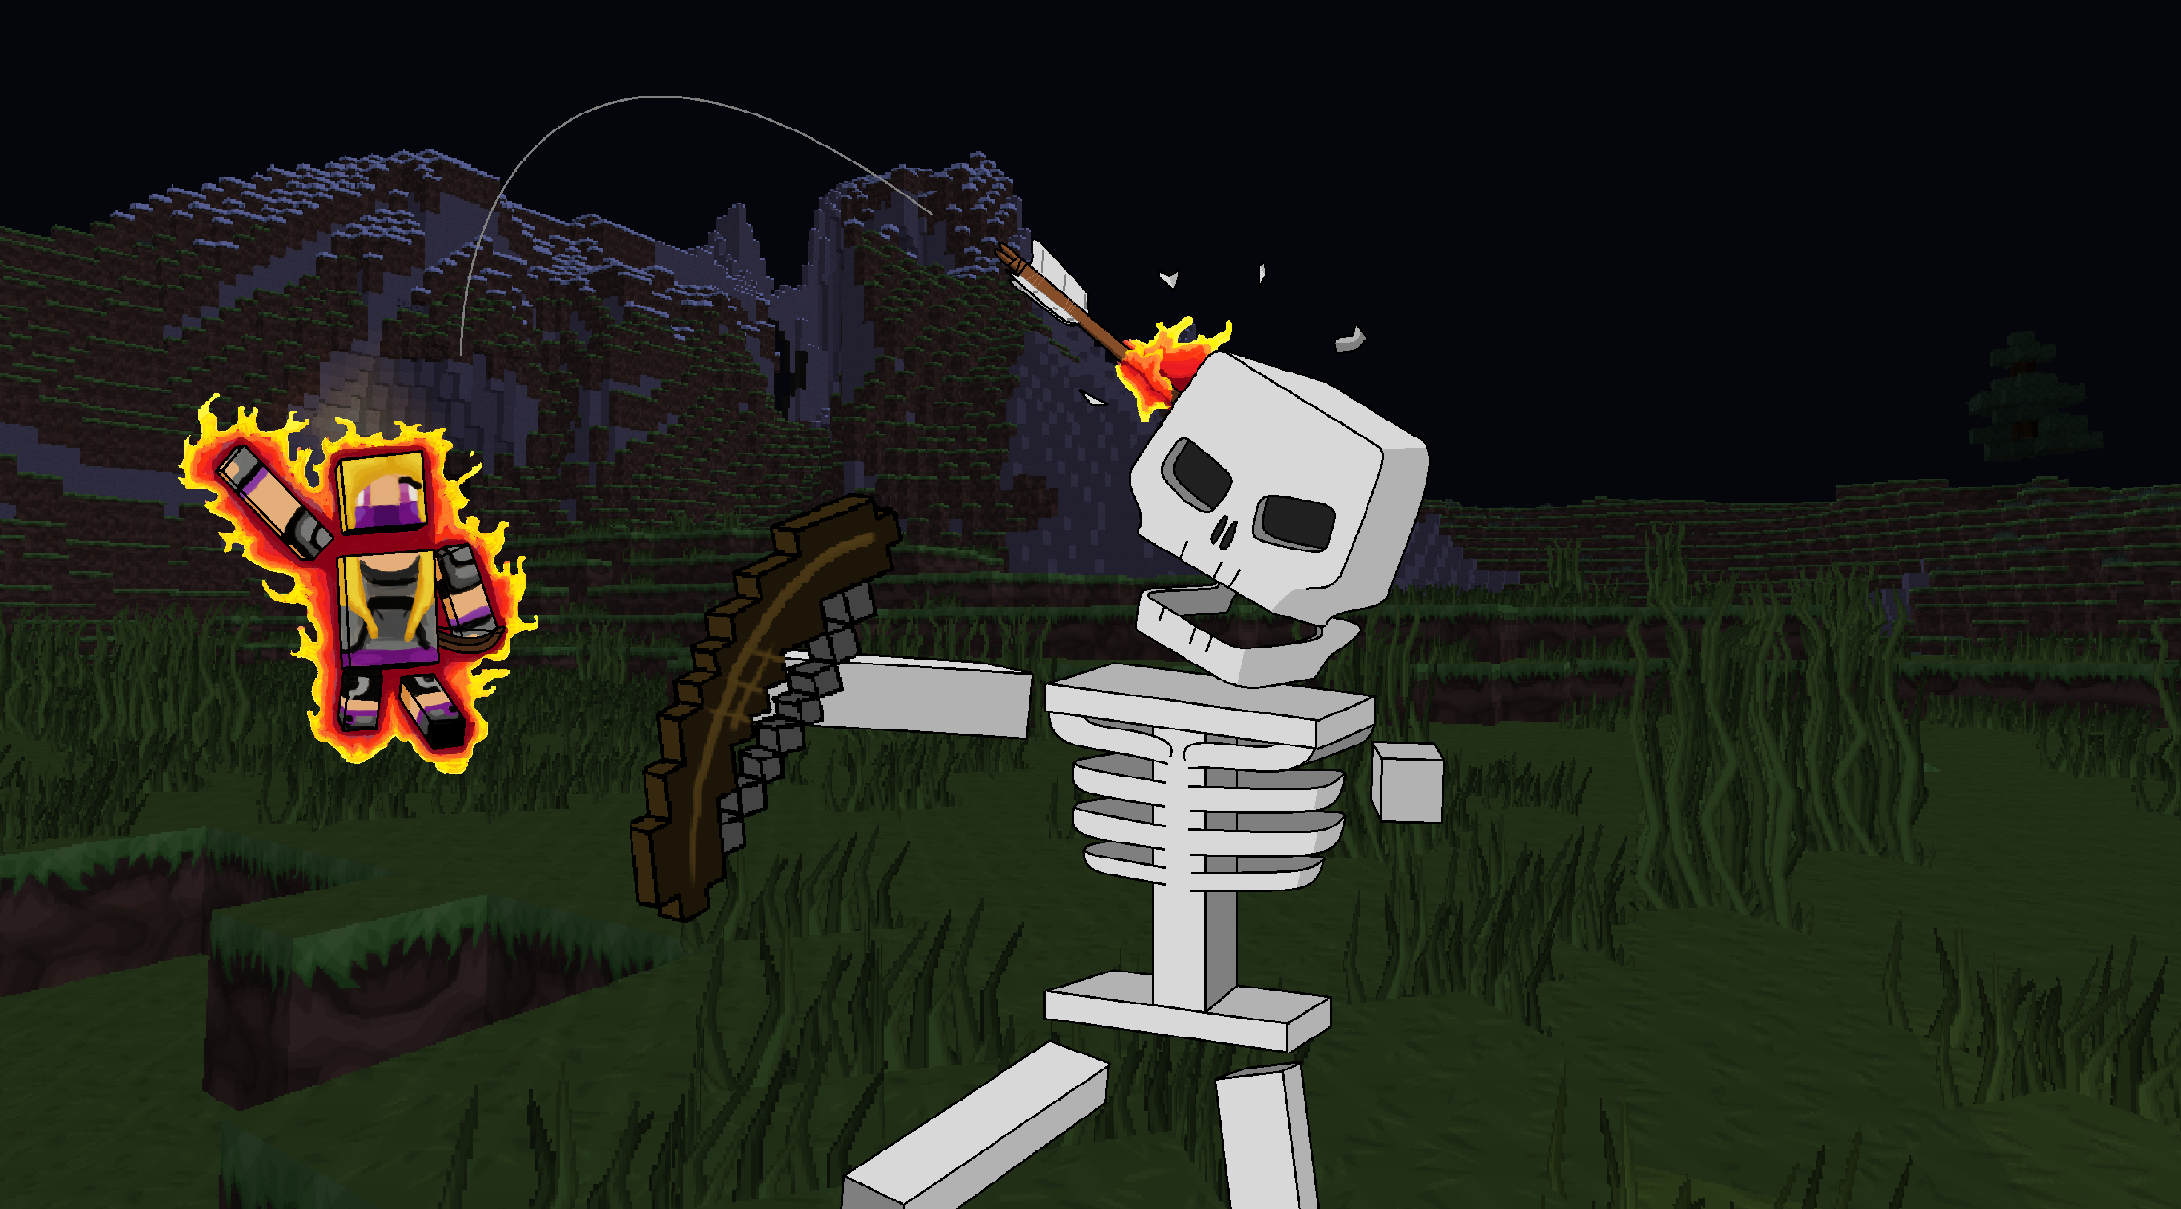 creeper144 1 with fire (2).png